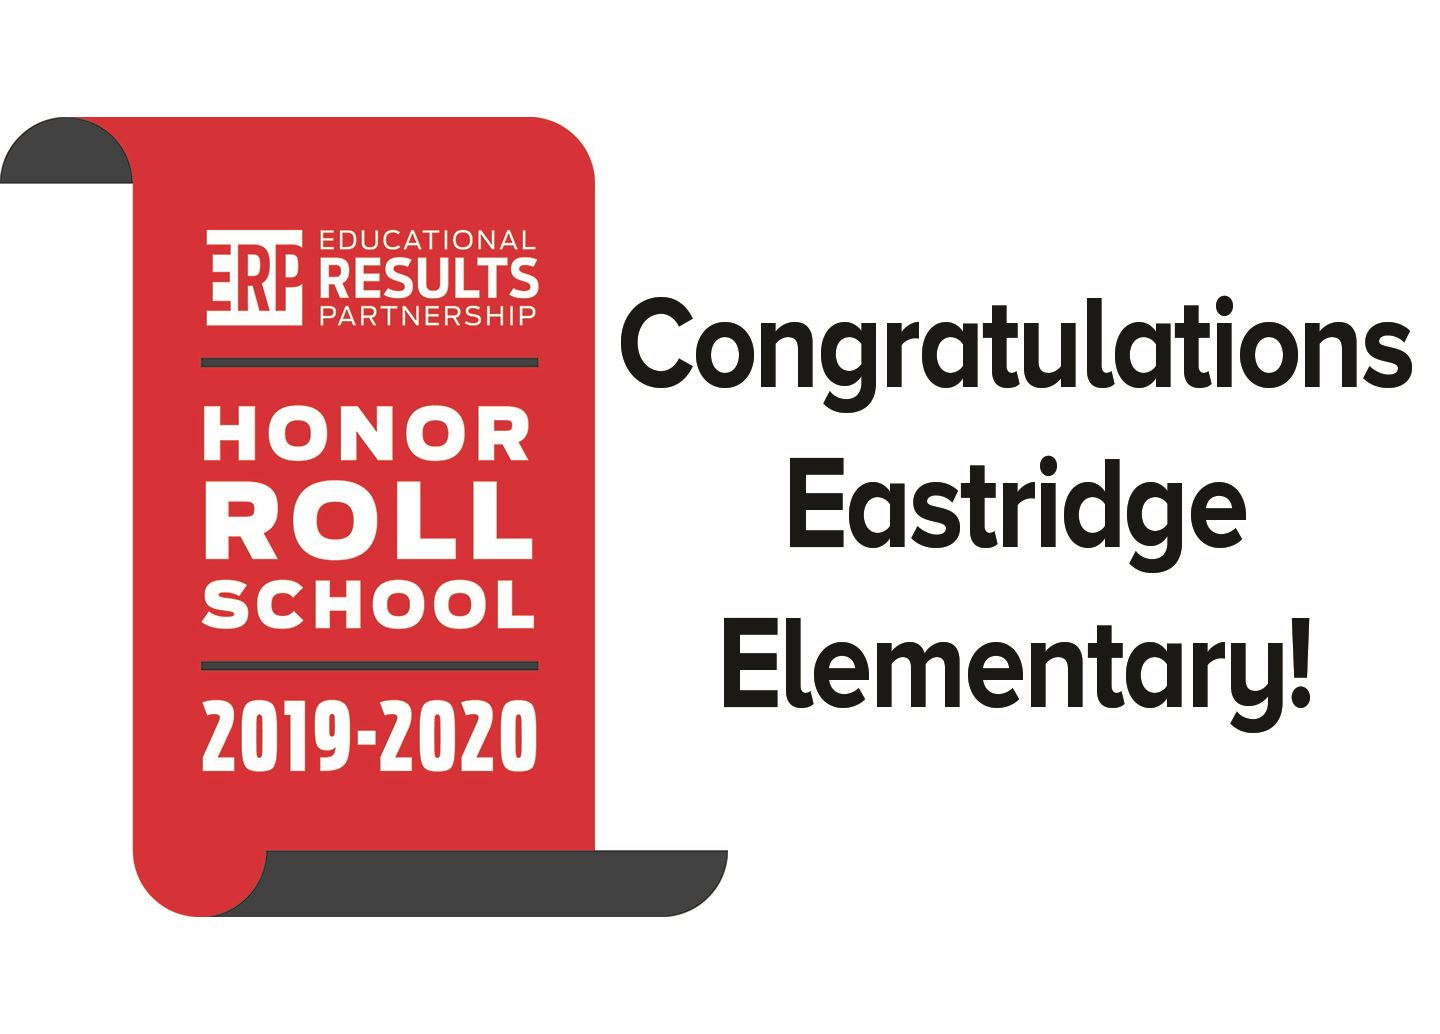 Congratulations Eastridge Elementary on being named ERP Honor Roll School for 2019-2020